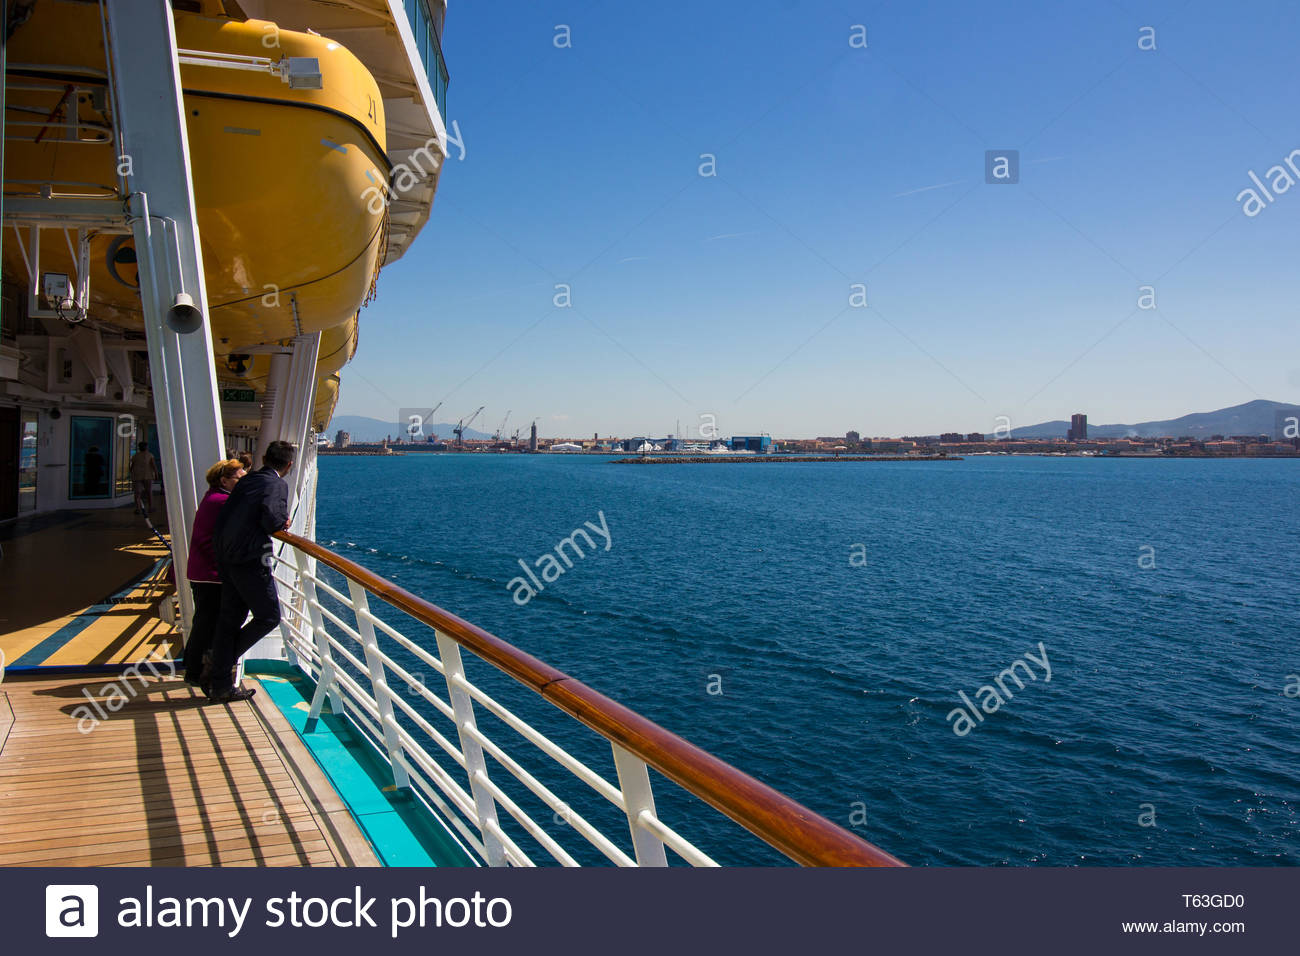 Pisa, Italy - May, 17, 2017: Cruise passengers watch on from the deck as royal caribbean navigator of the seas head to Marina di Pisa. Stock Photo